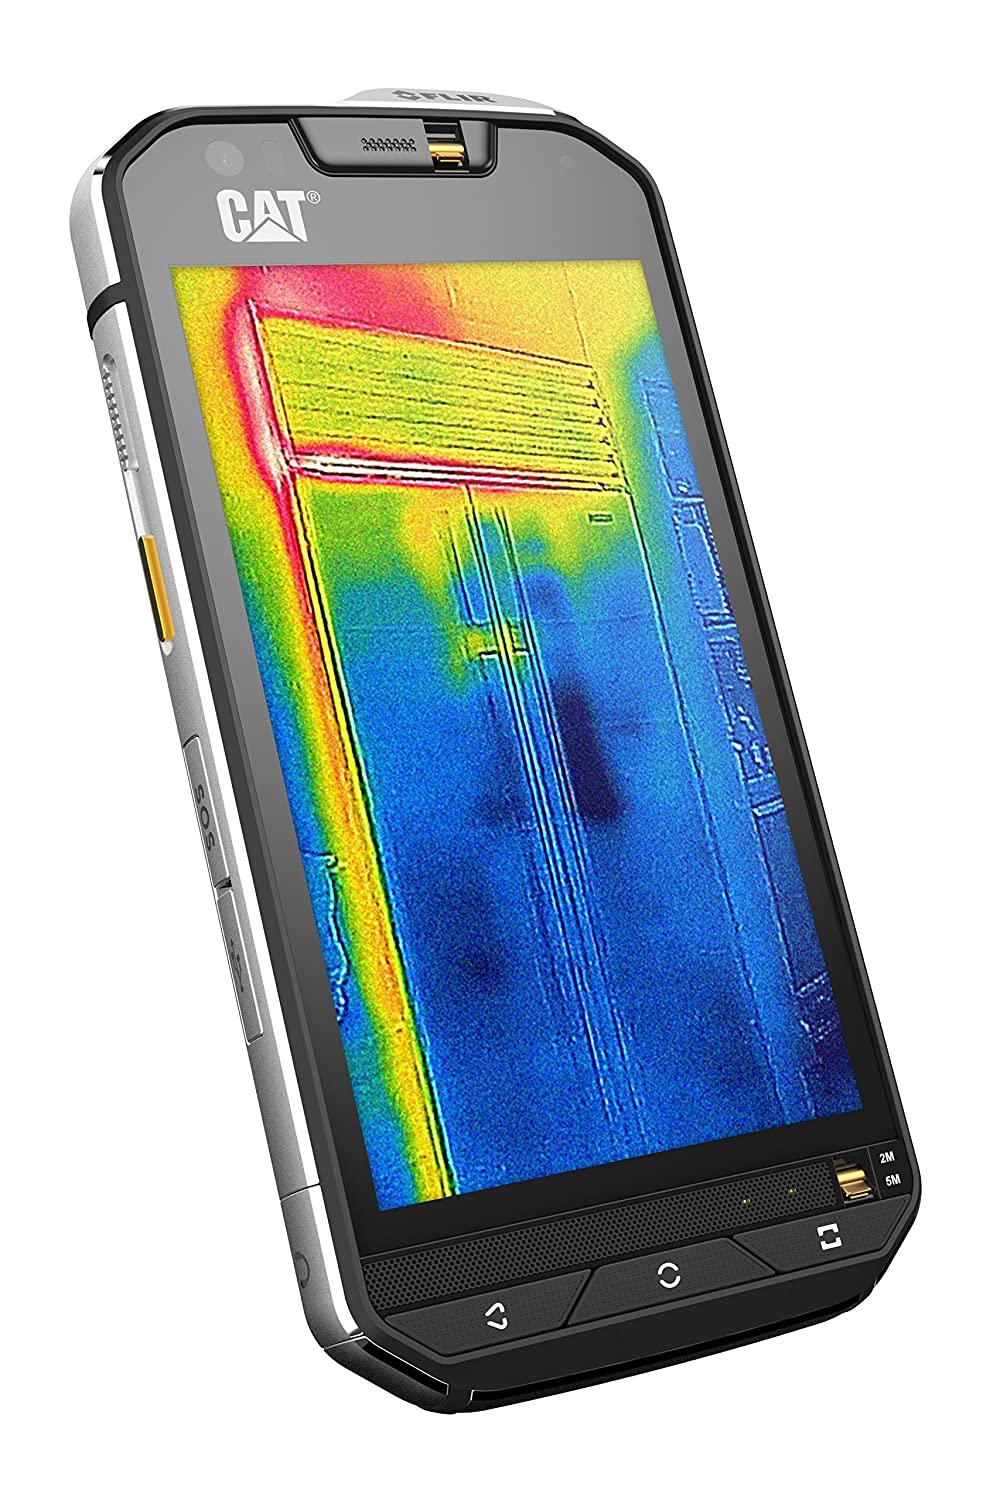 Cat S60 Thermal Imaging Rugged Smartphone (Certified Refurbished ...